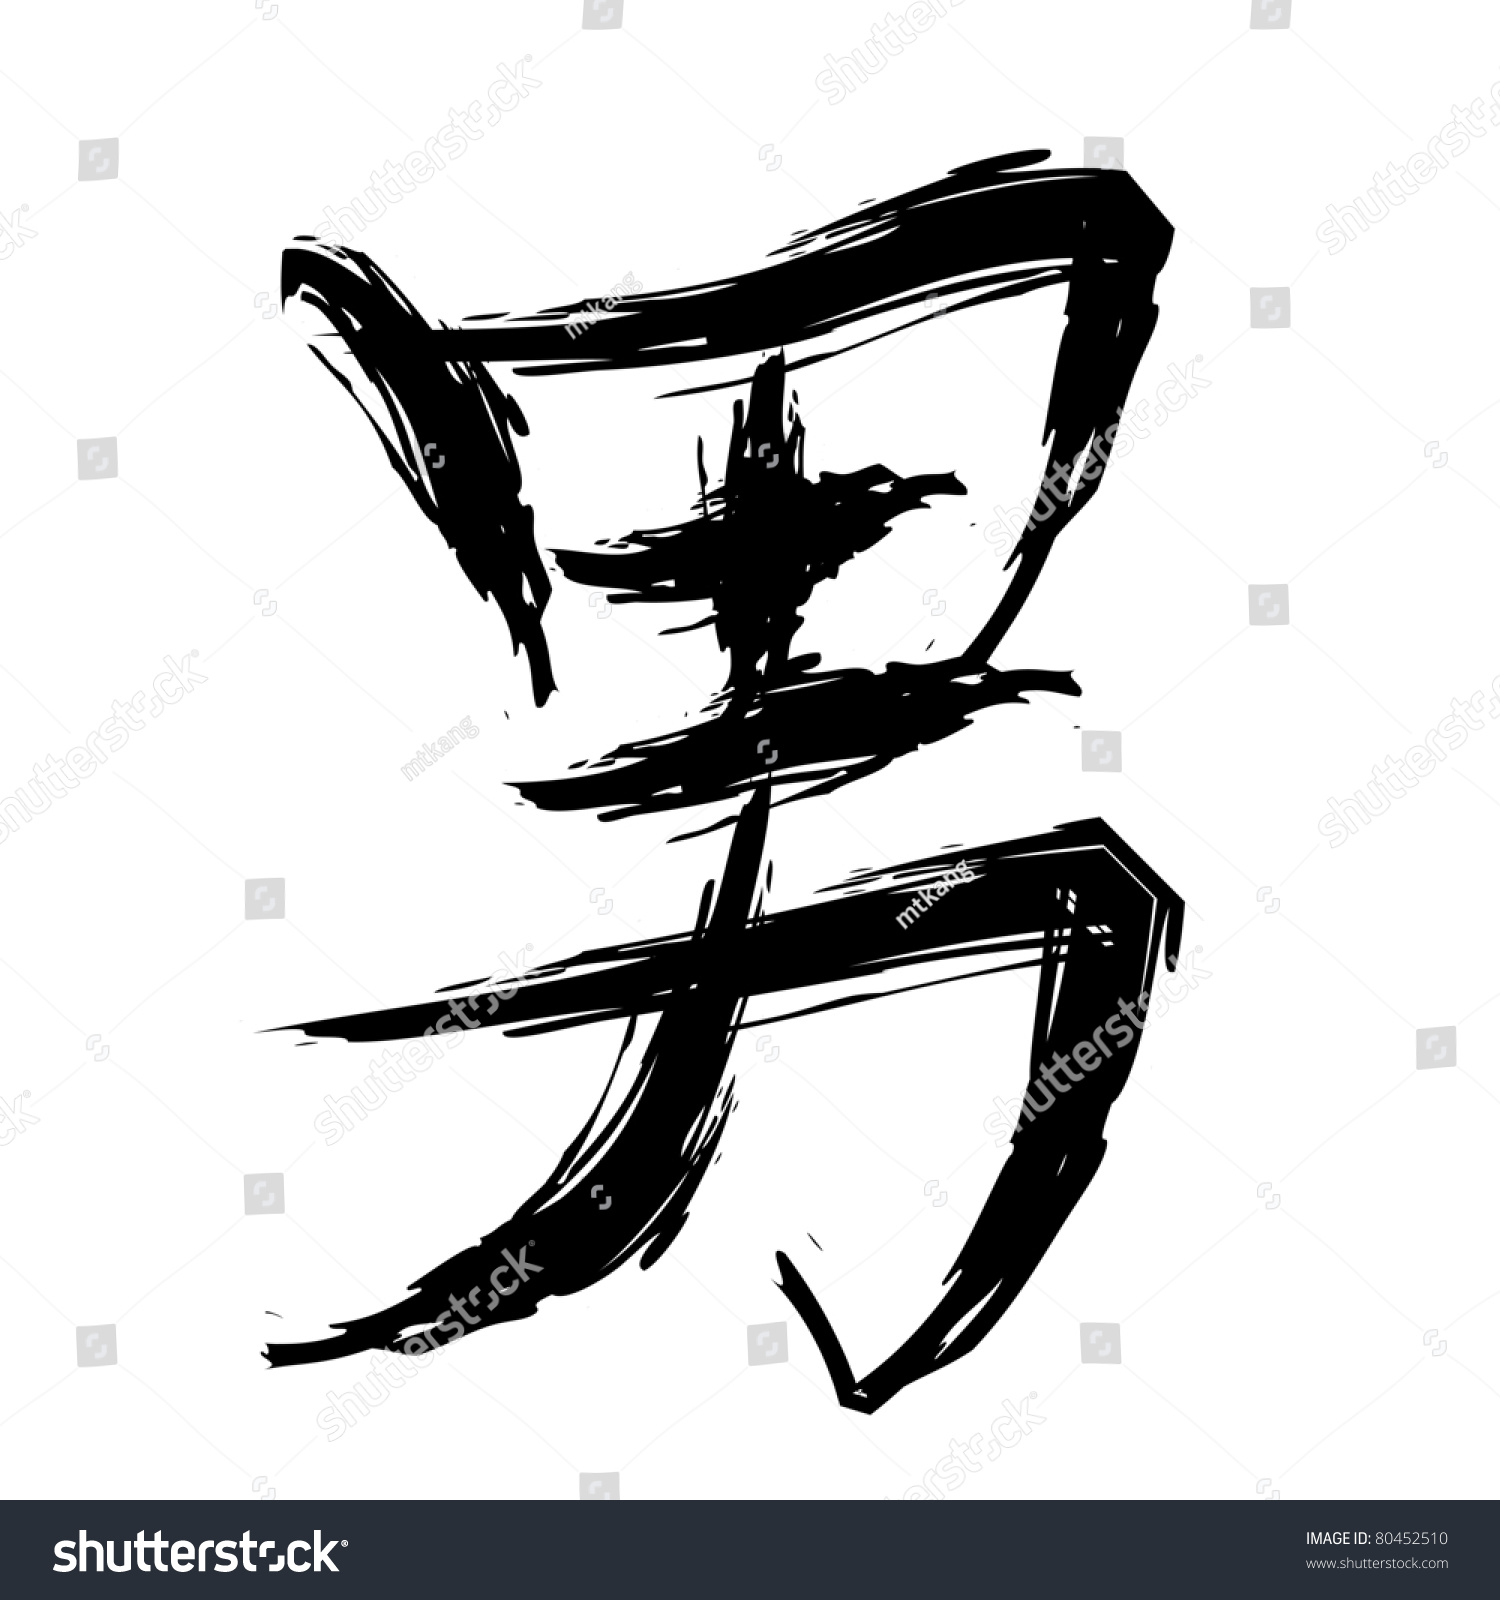 Chinese Character Man Calligraphy Style Stock Illustration 80452510